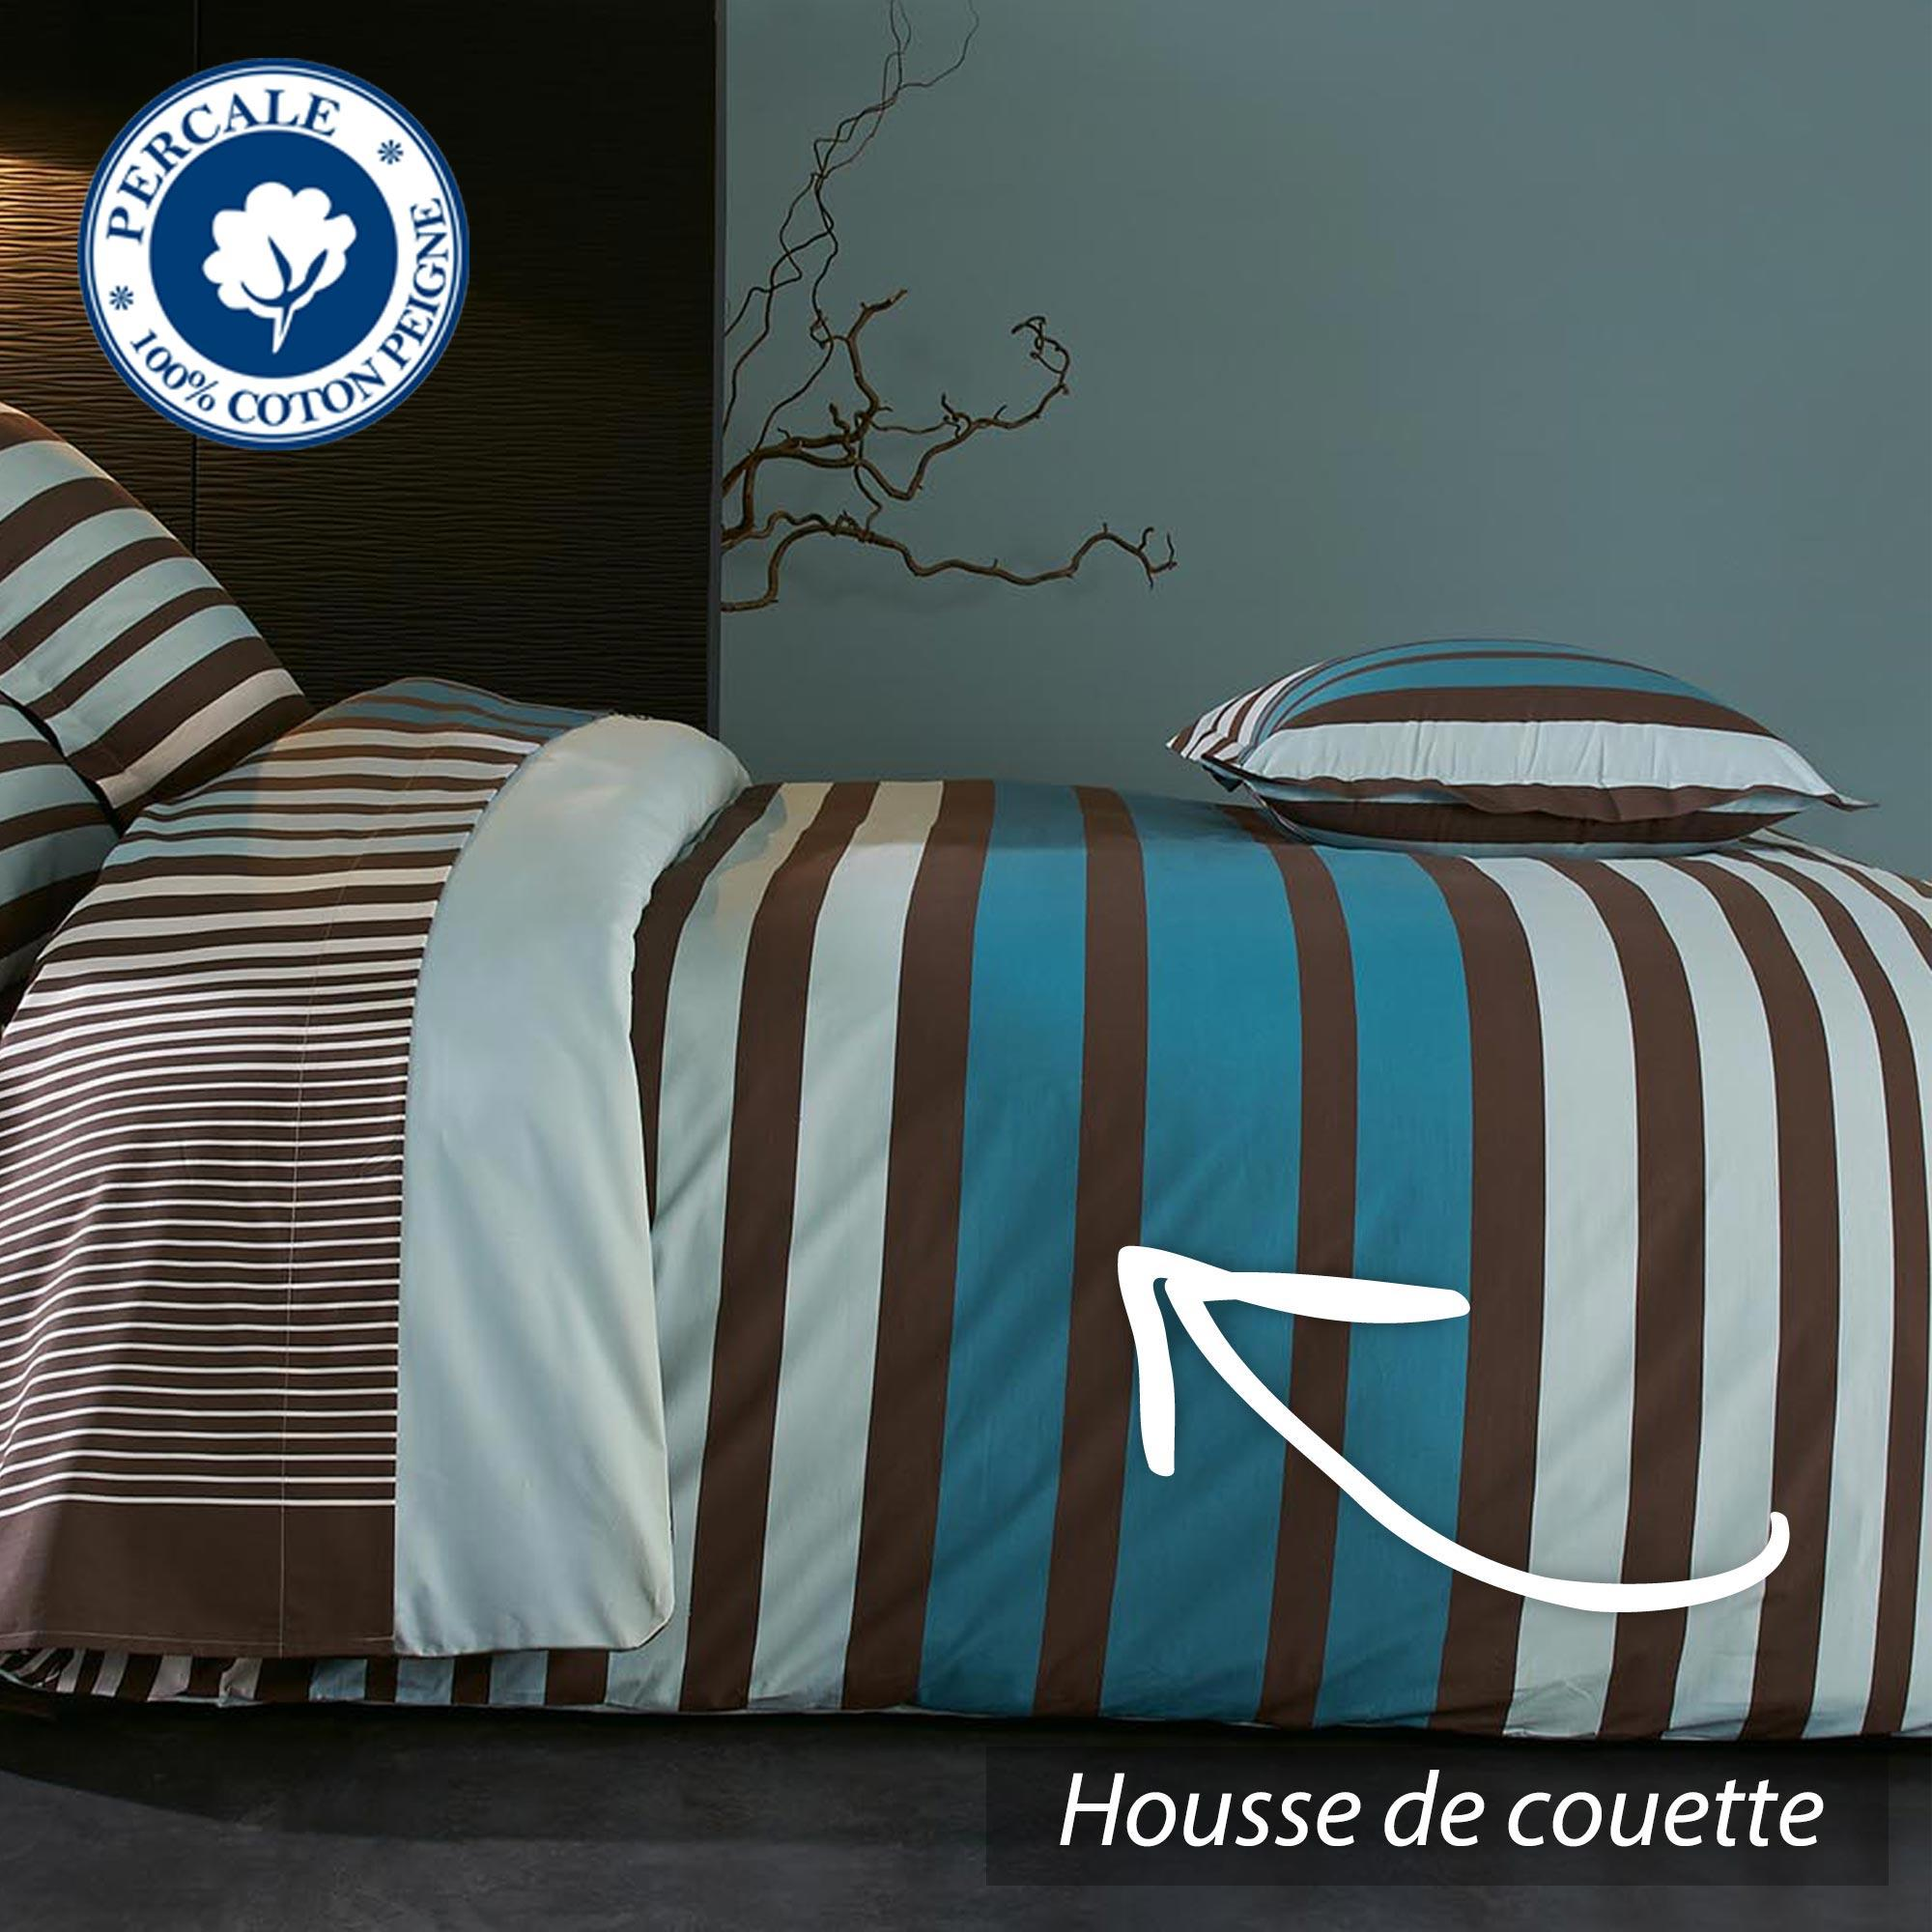 Petrole guide d 39 achat for Housse de couette originale